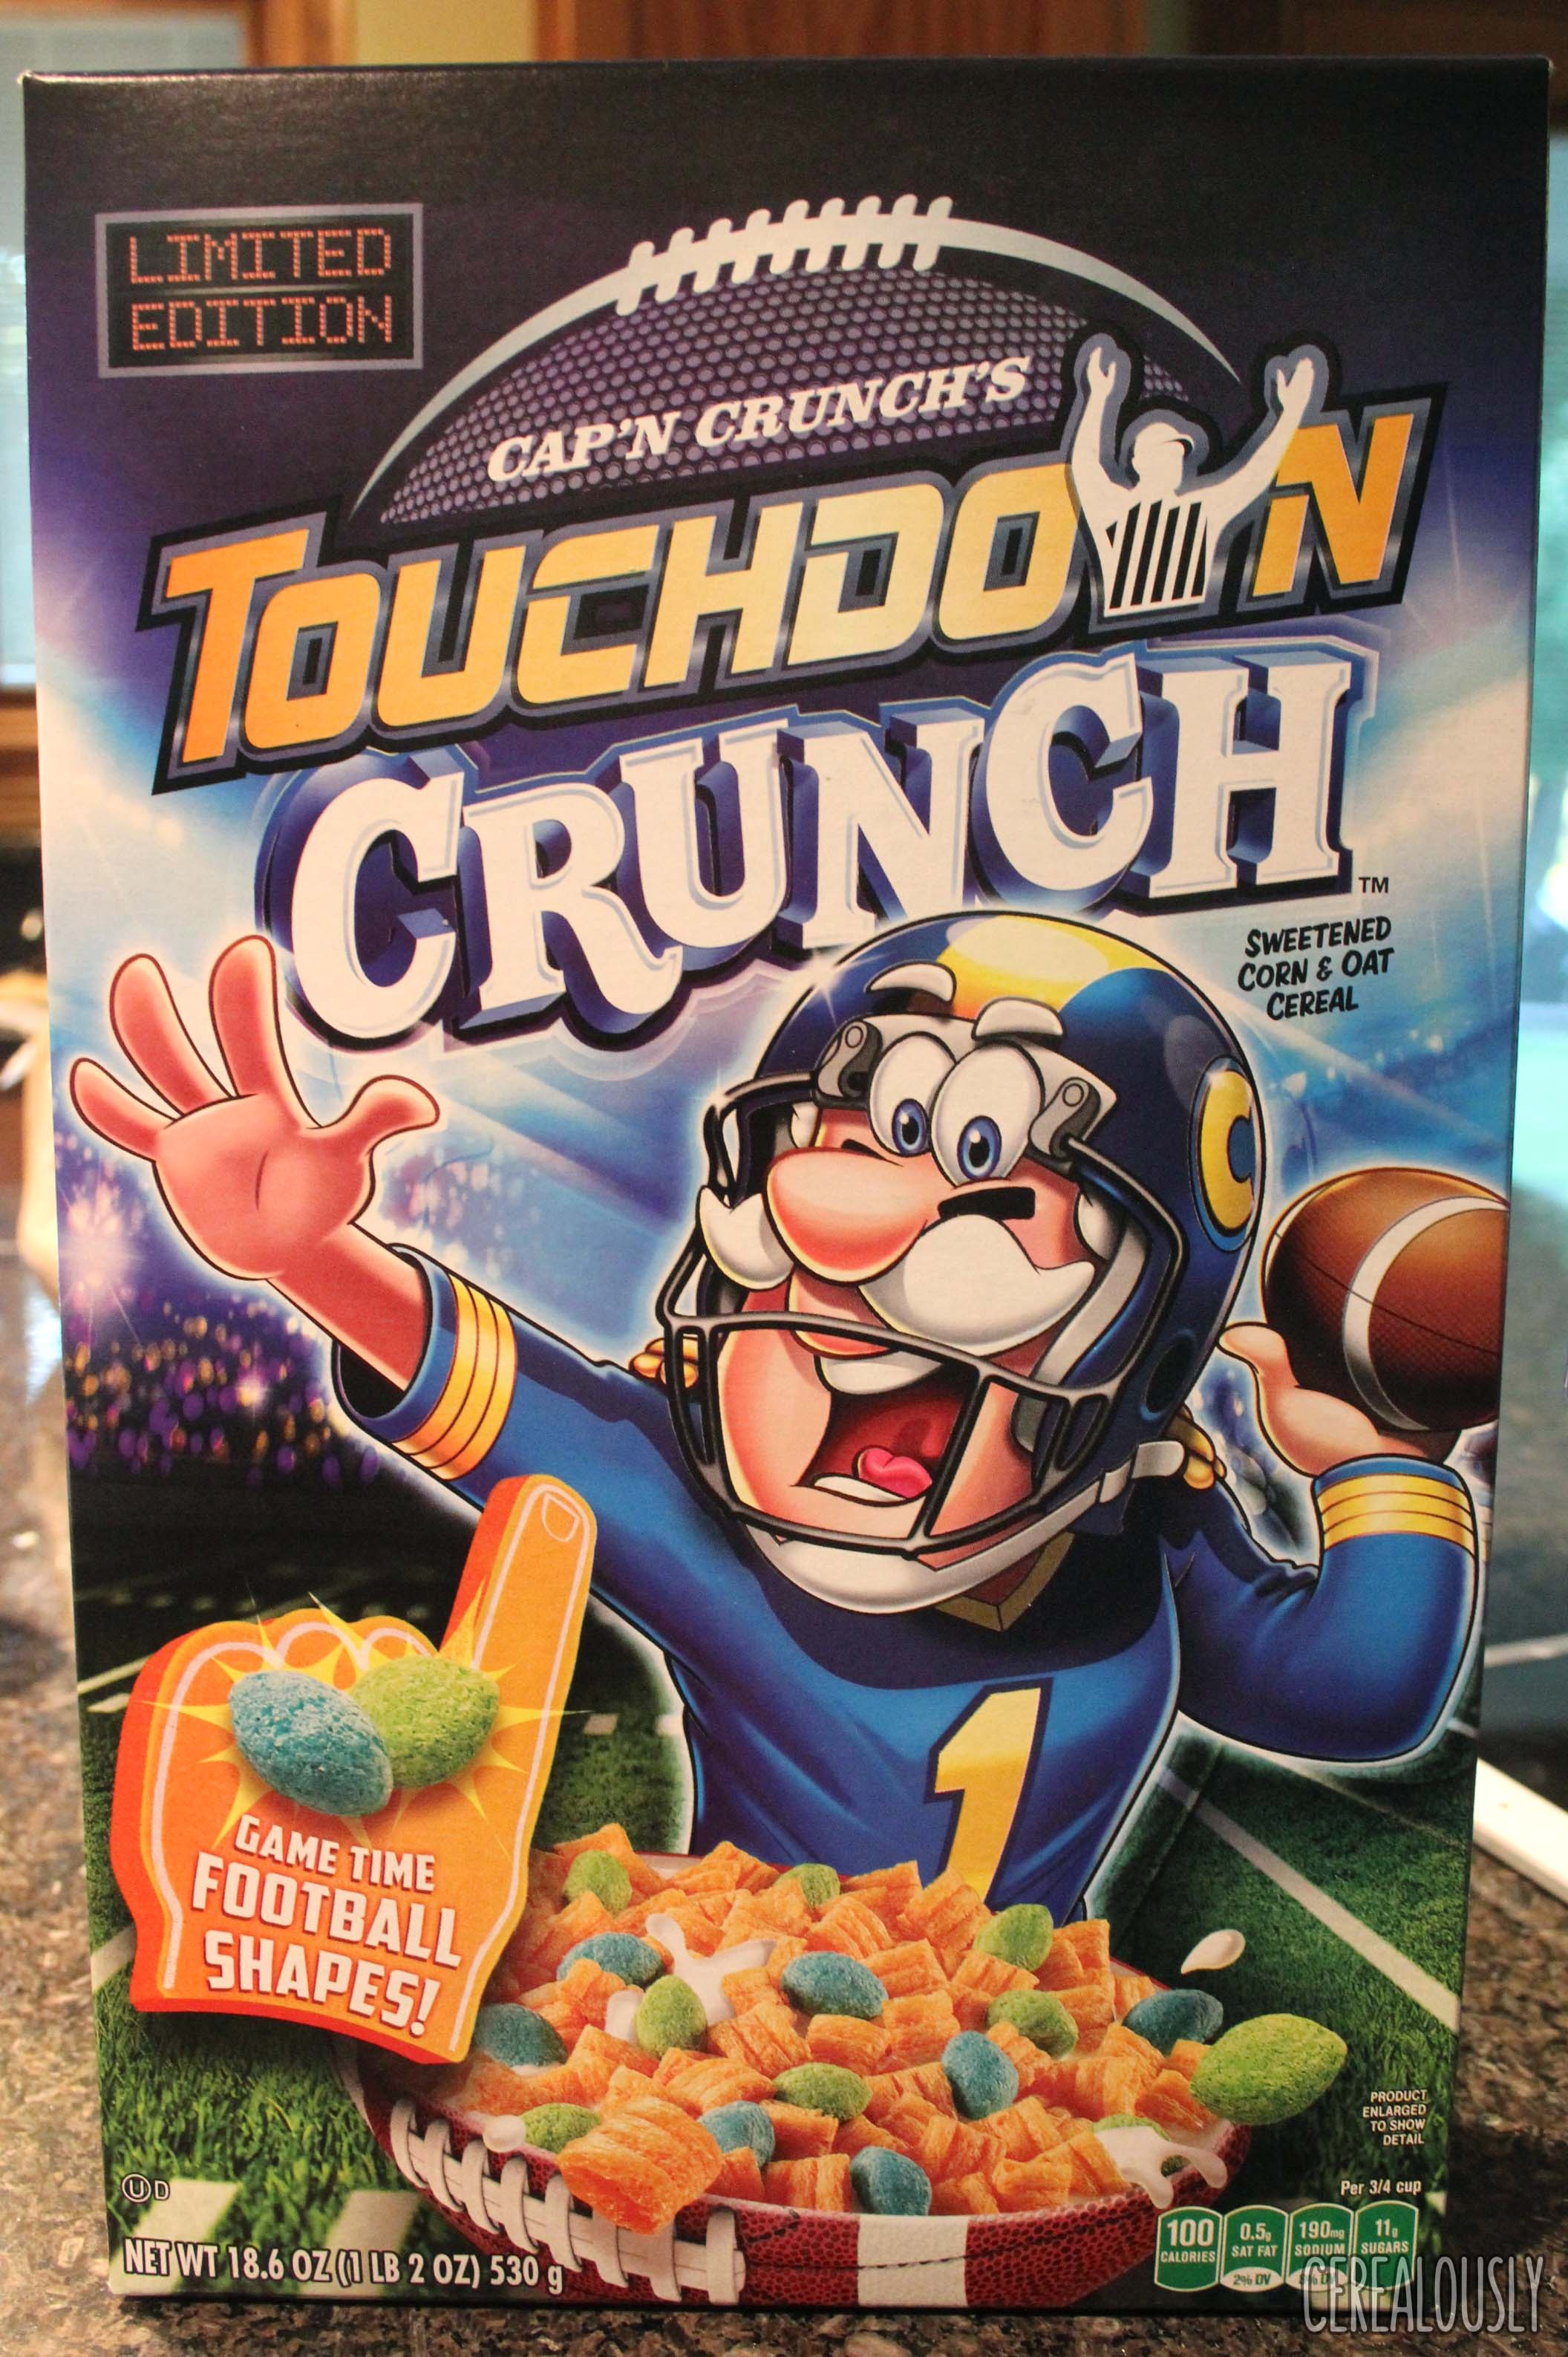 capn crunchs touchdown crunch cereal box - Captain Crunch Halloween